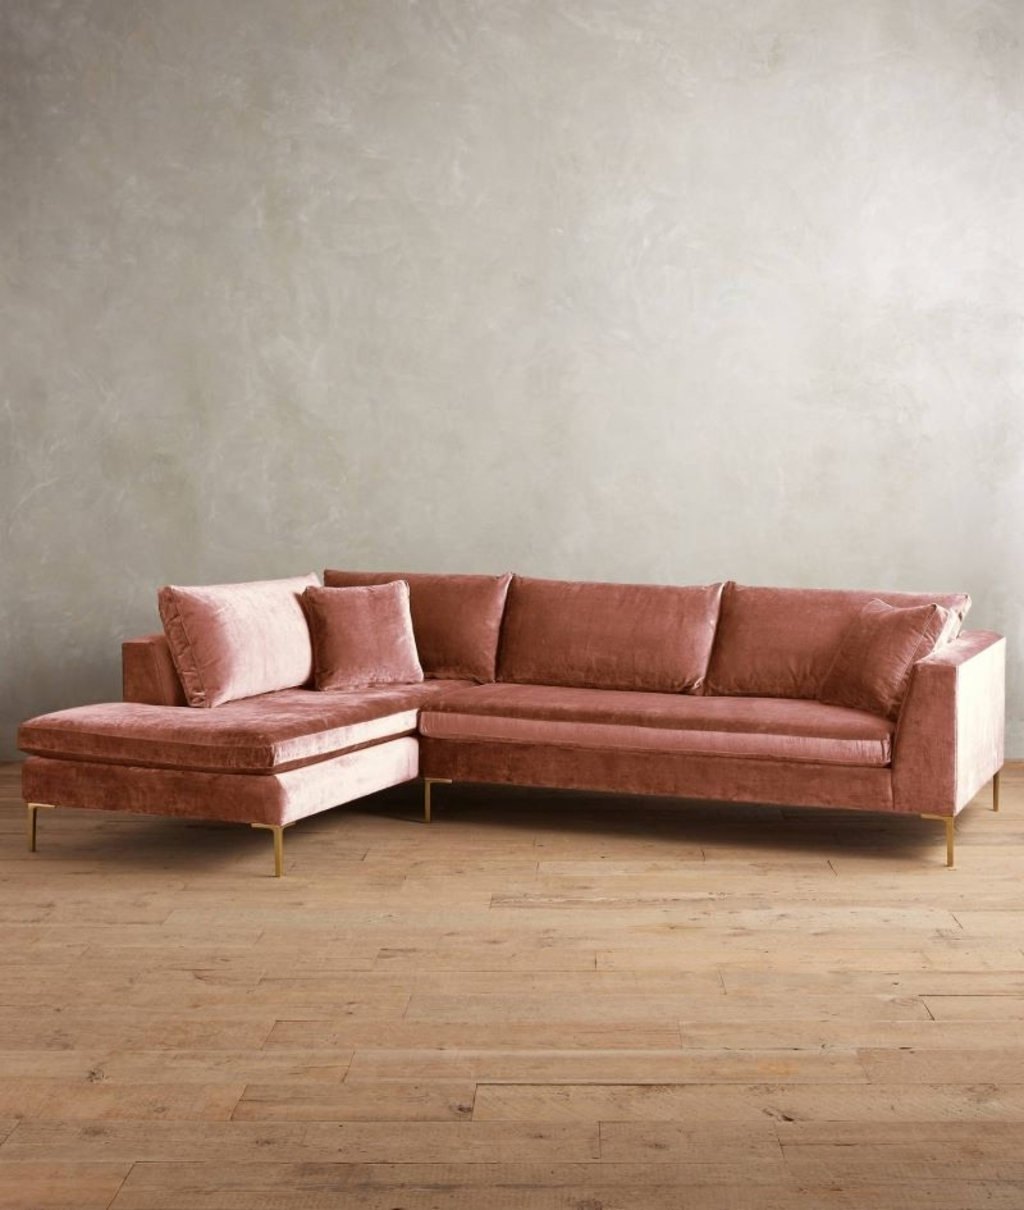 Most Popular Velvet Sectional Sofas For Furniture: Velvet Sectional Sofa From Anthropologie – 20 Modular (View 9 of 15)